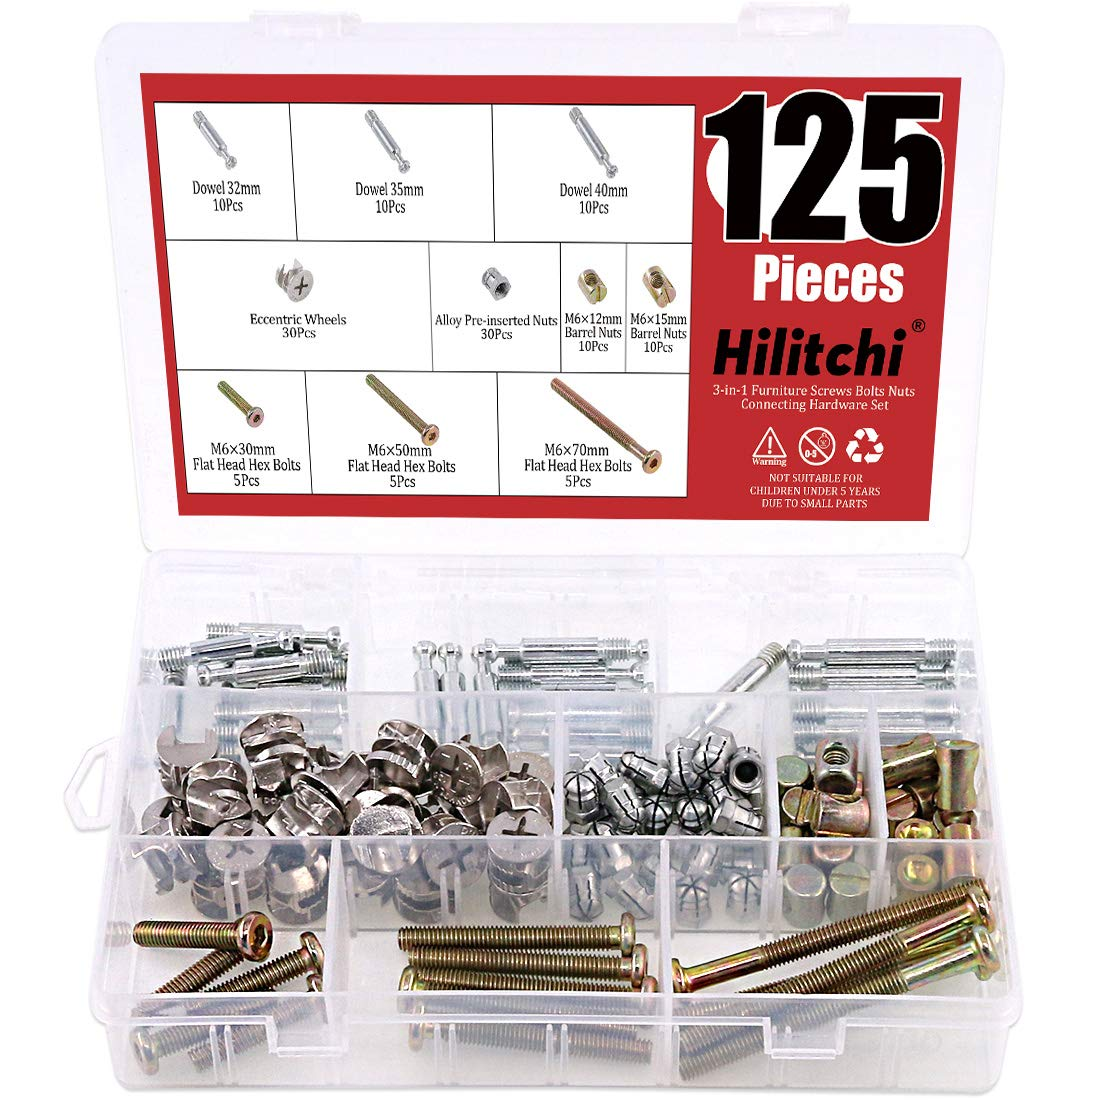 Hilitchi 125 Pcs 3 in 1 Cam Fitting with Dowel and Pre-Inserted Nut with Zinc Plated Hex Drive Socket Cap Furniture Barrel Nuts Crib Screws Assortment Kit for Cabinet Drawer Furniture Connecting